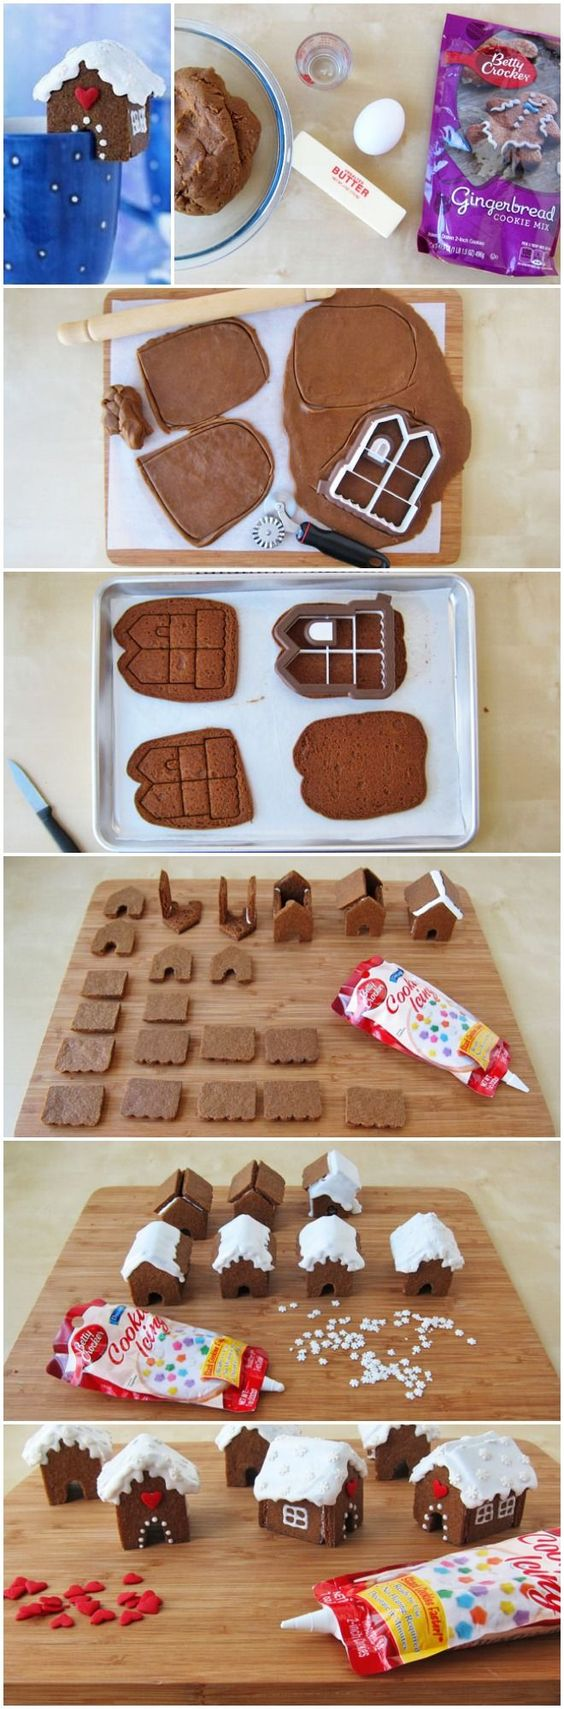 Premade Gingerbread Houses How To Make A Winter Wonderland Gingerbread House Bring The